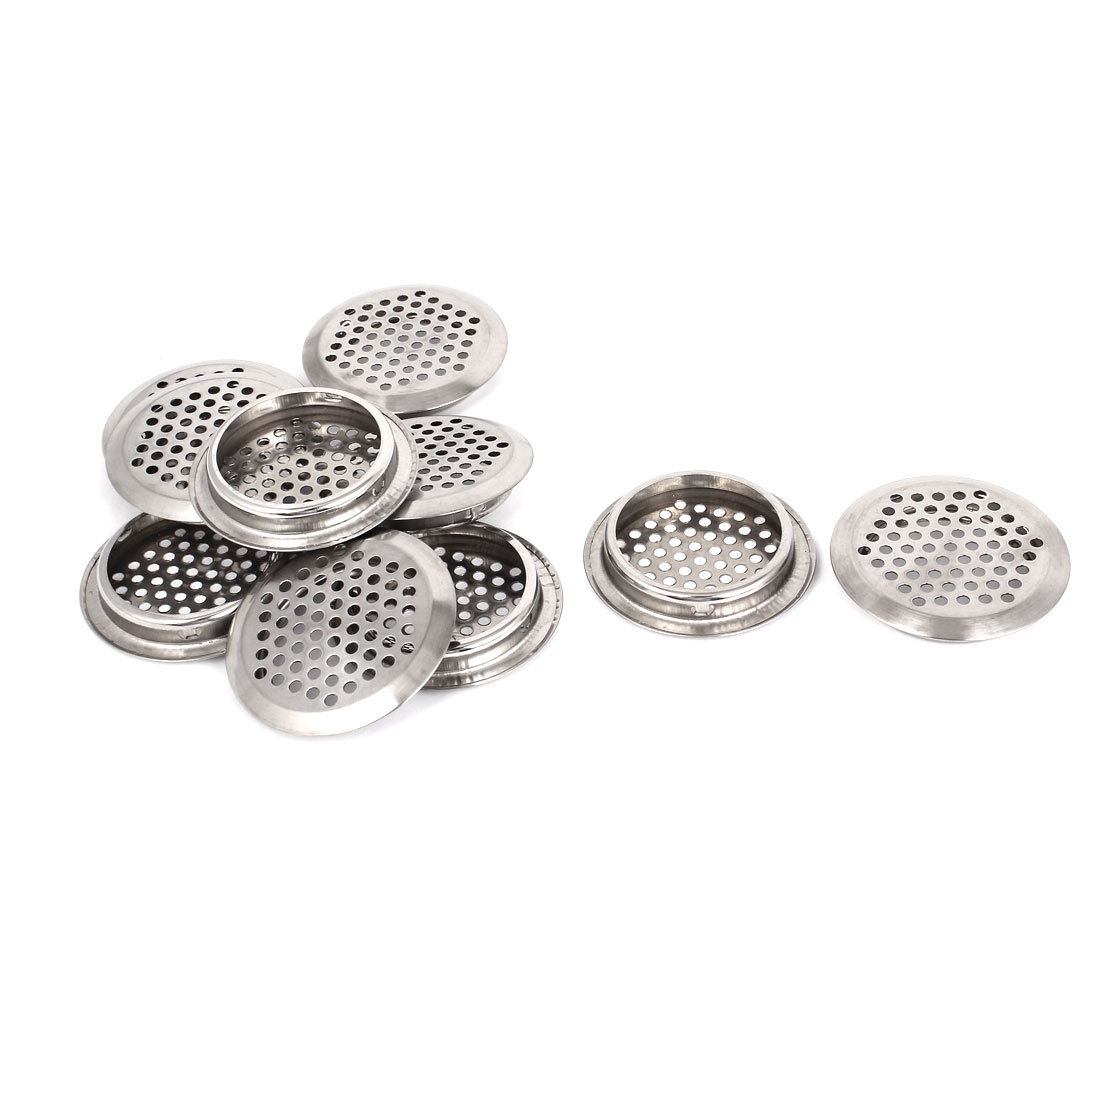 Metal 53mm Bottom Dia Perforated Round Mesh Air Vents Ventilation Louvers 10pcs